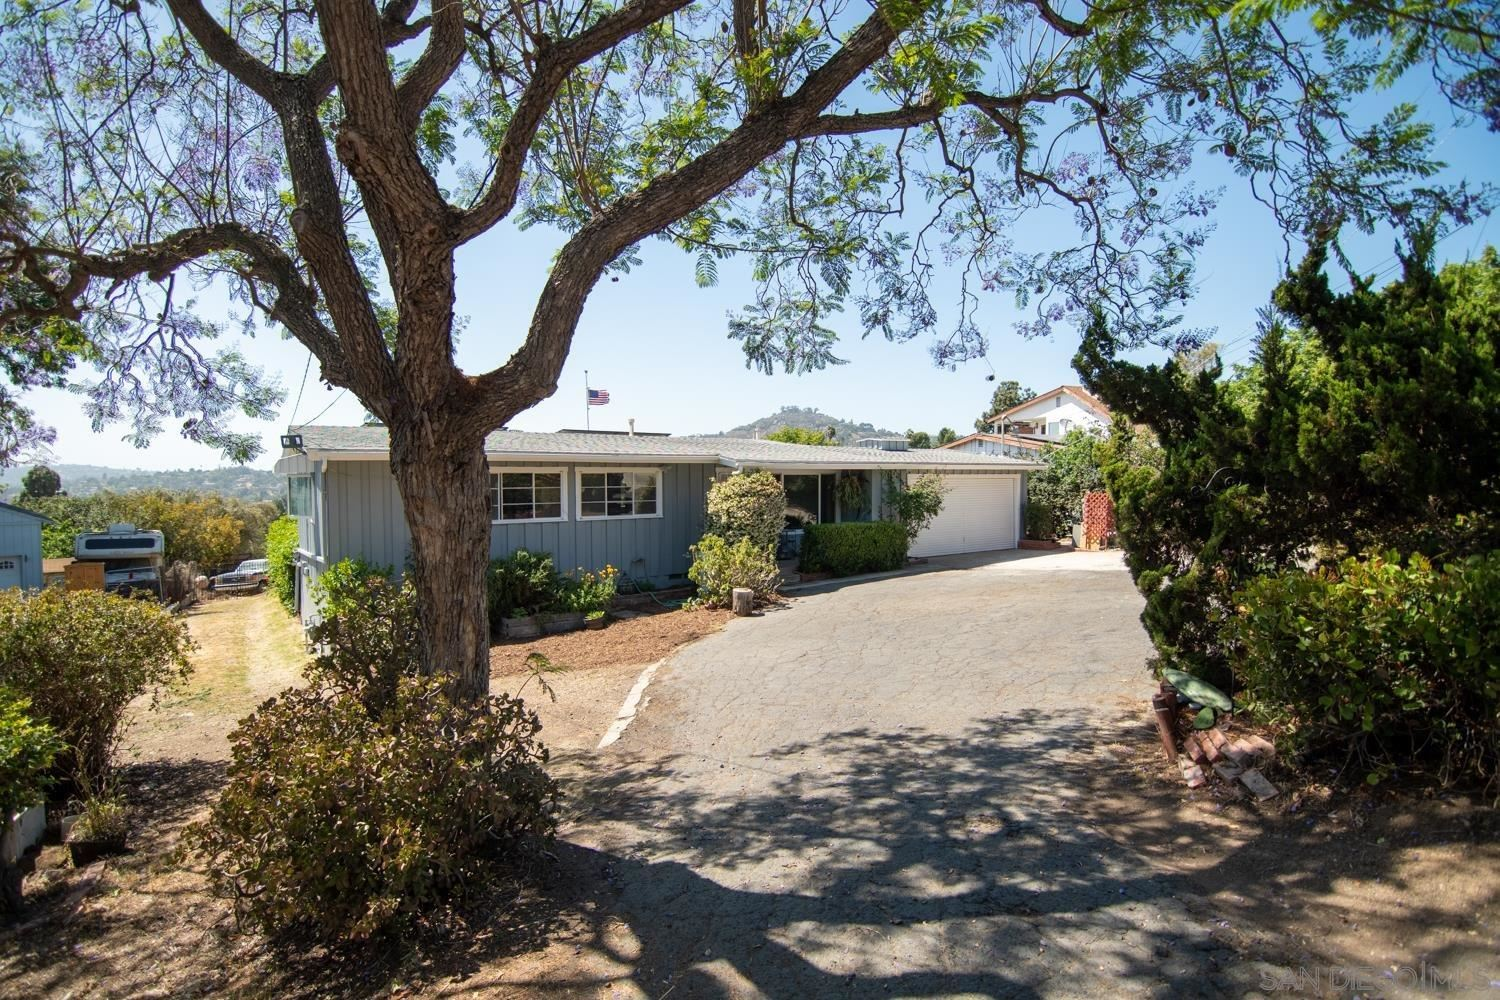 Photo of 10328 Ramona Dr, Spring Valley, CA 91977 (MLS # 210014483)